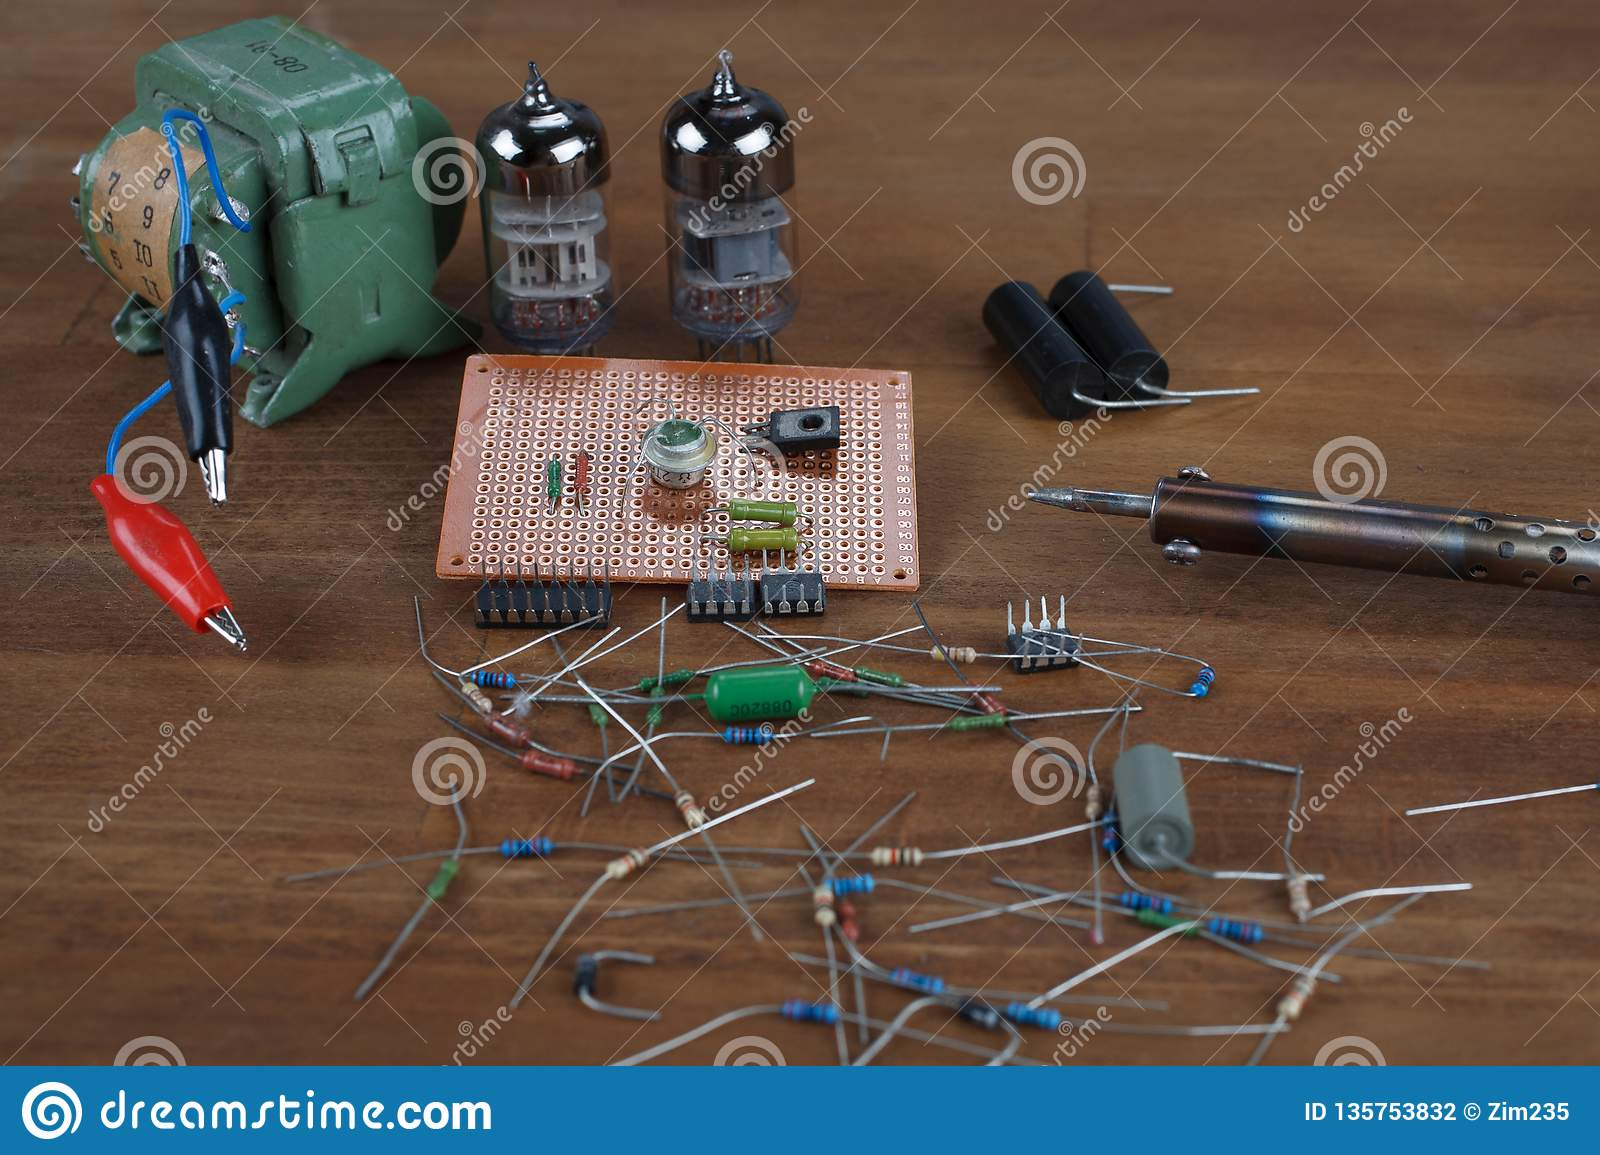 Soldering Iron - Do It Yourself Concept Stock Image